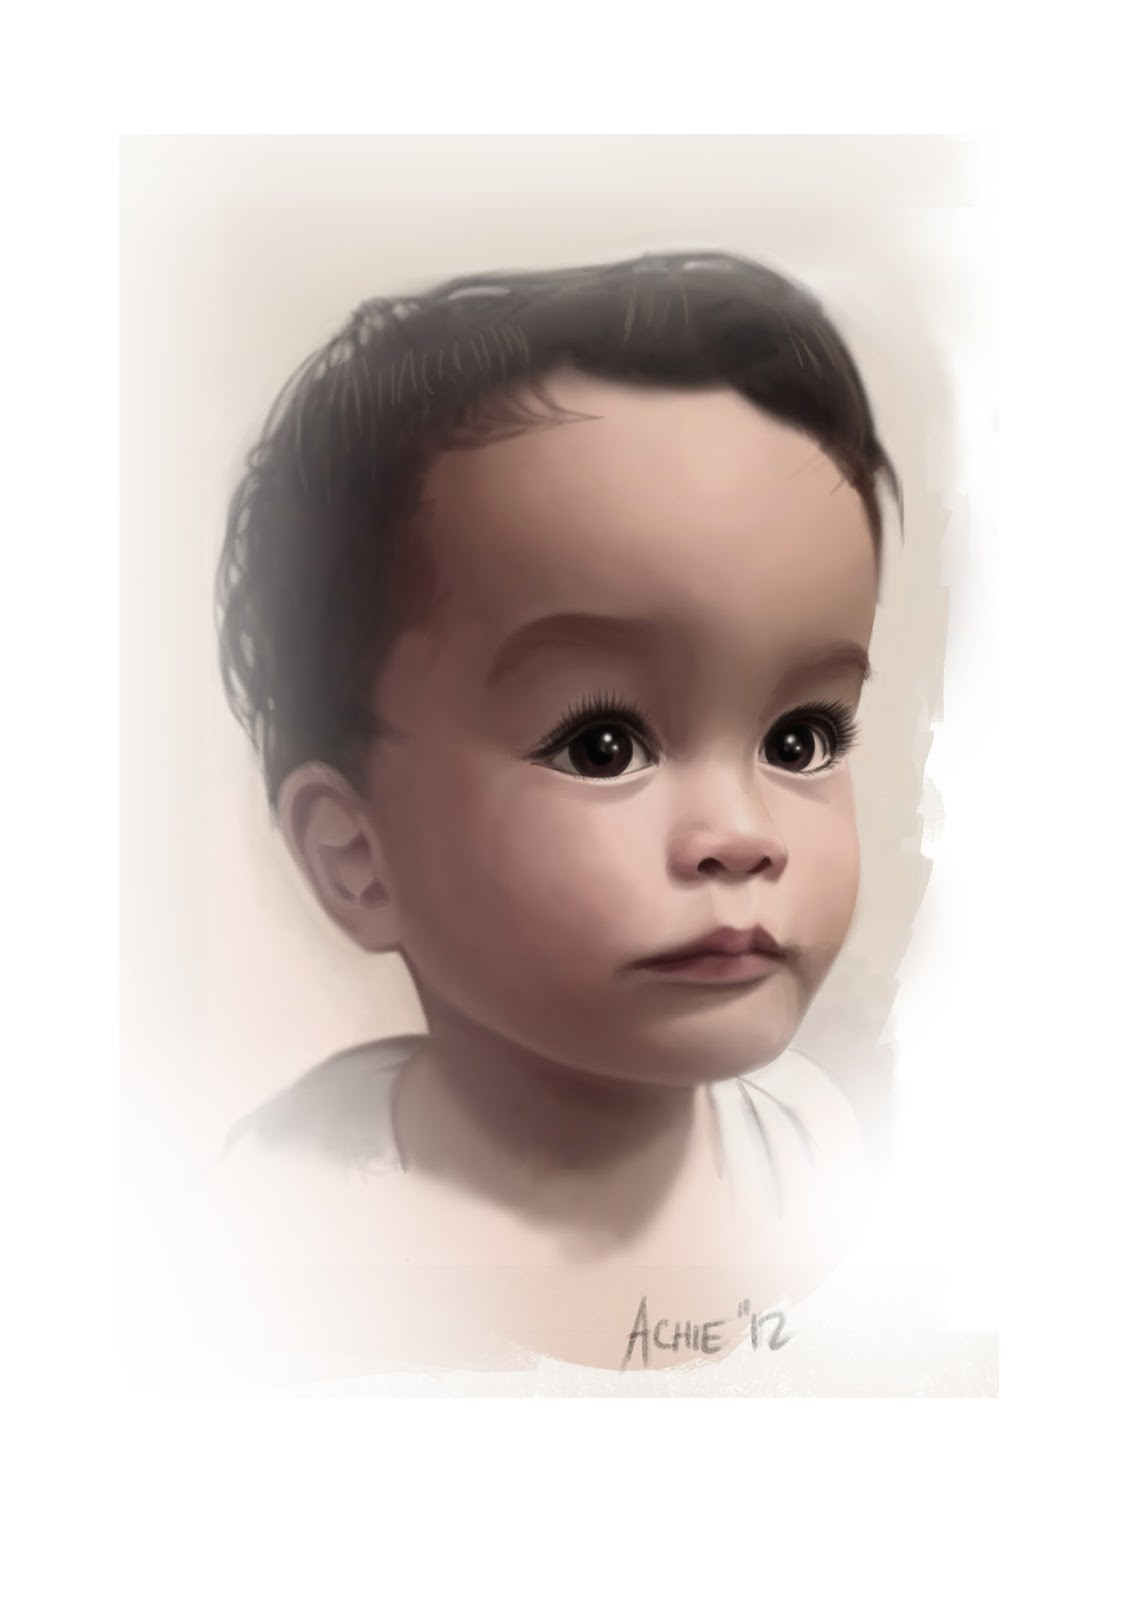 Study of my son